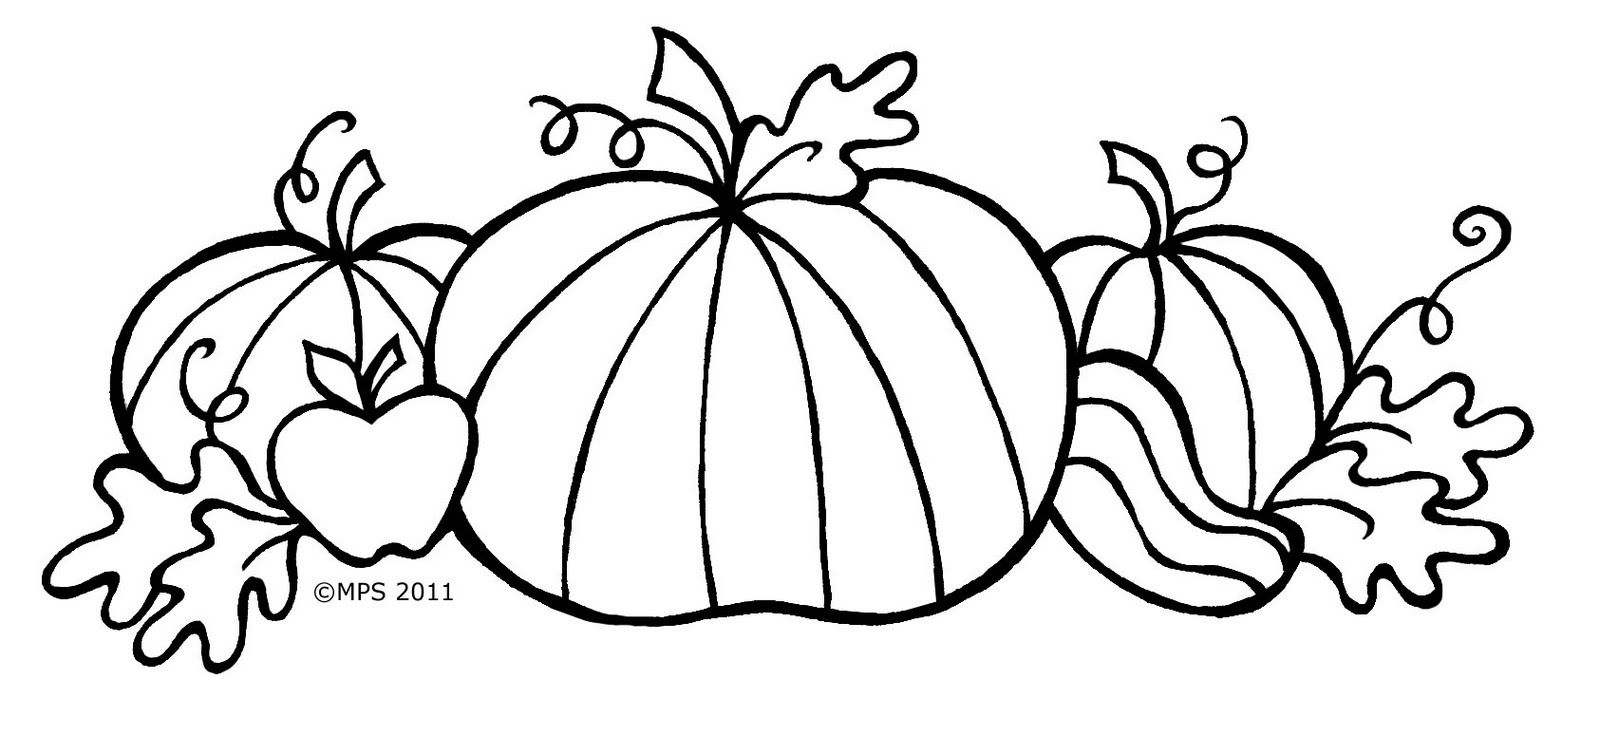 Autumn Harvest coloring page | Free Printable Coloring Pages | 755x1600